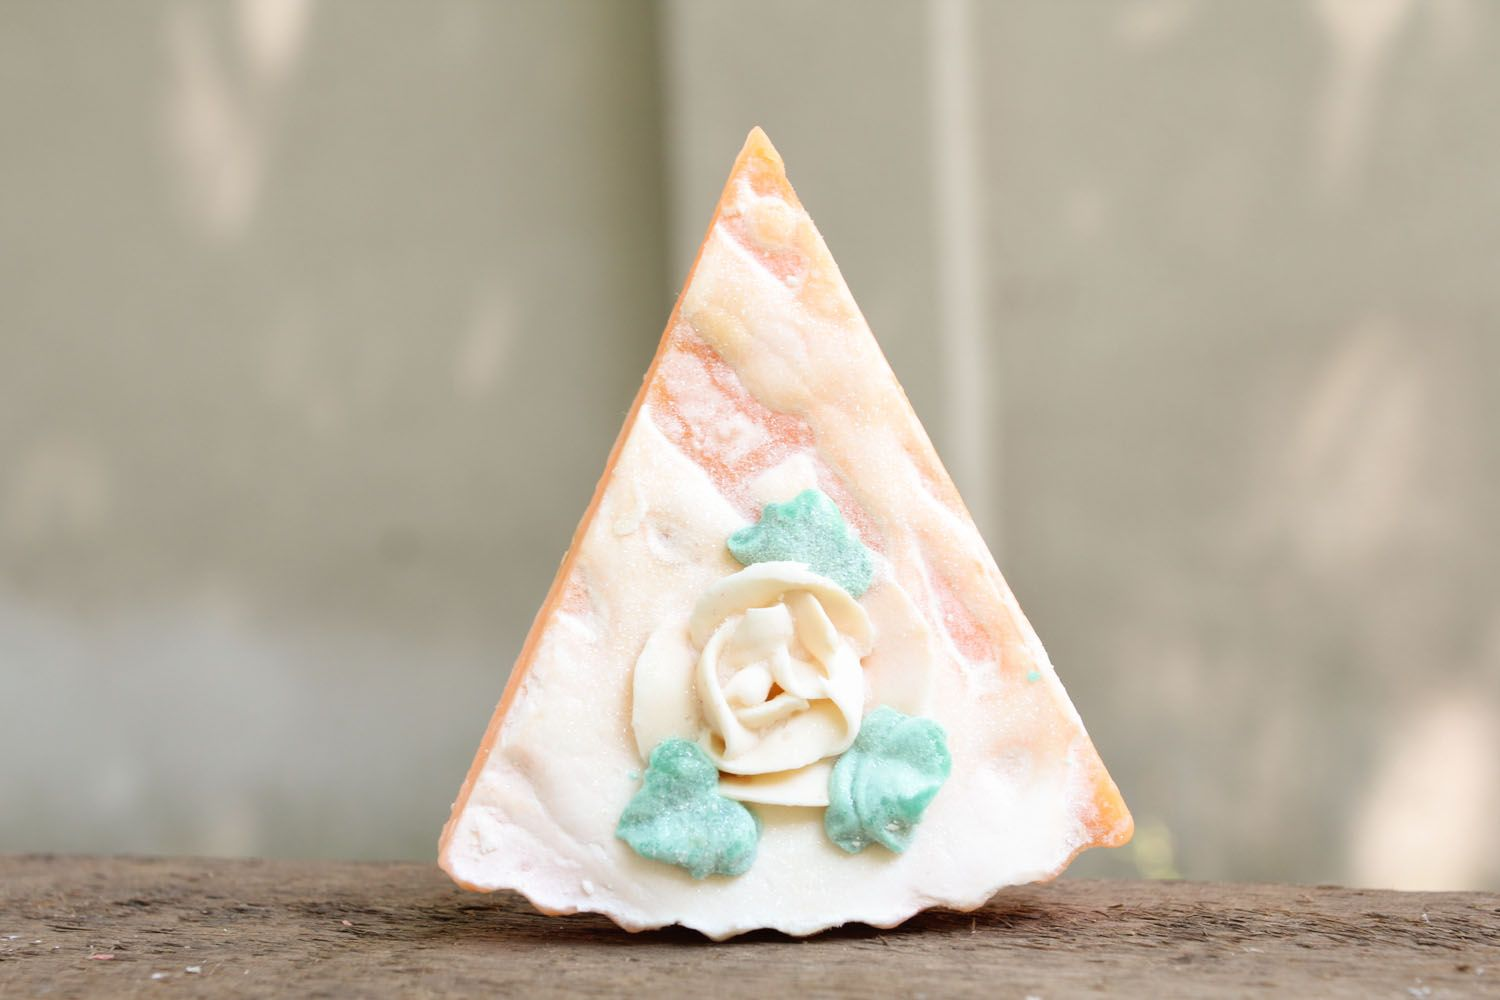 Soap with rose aroma photo 3